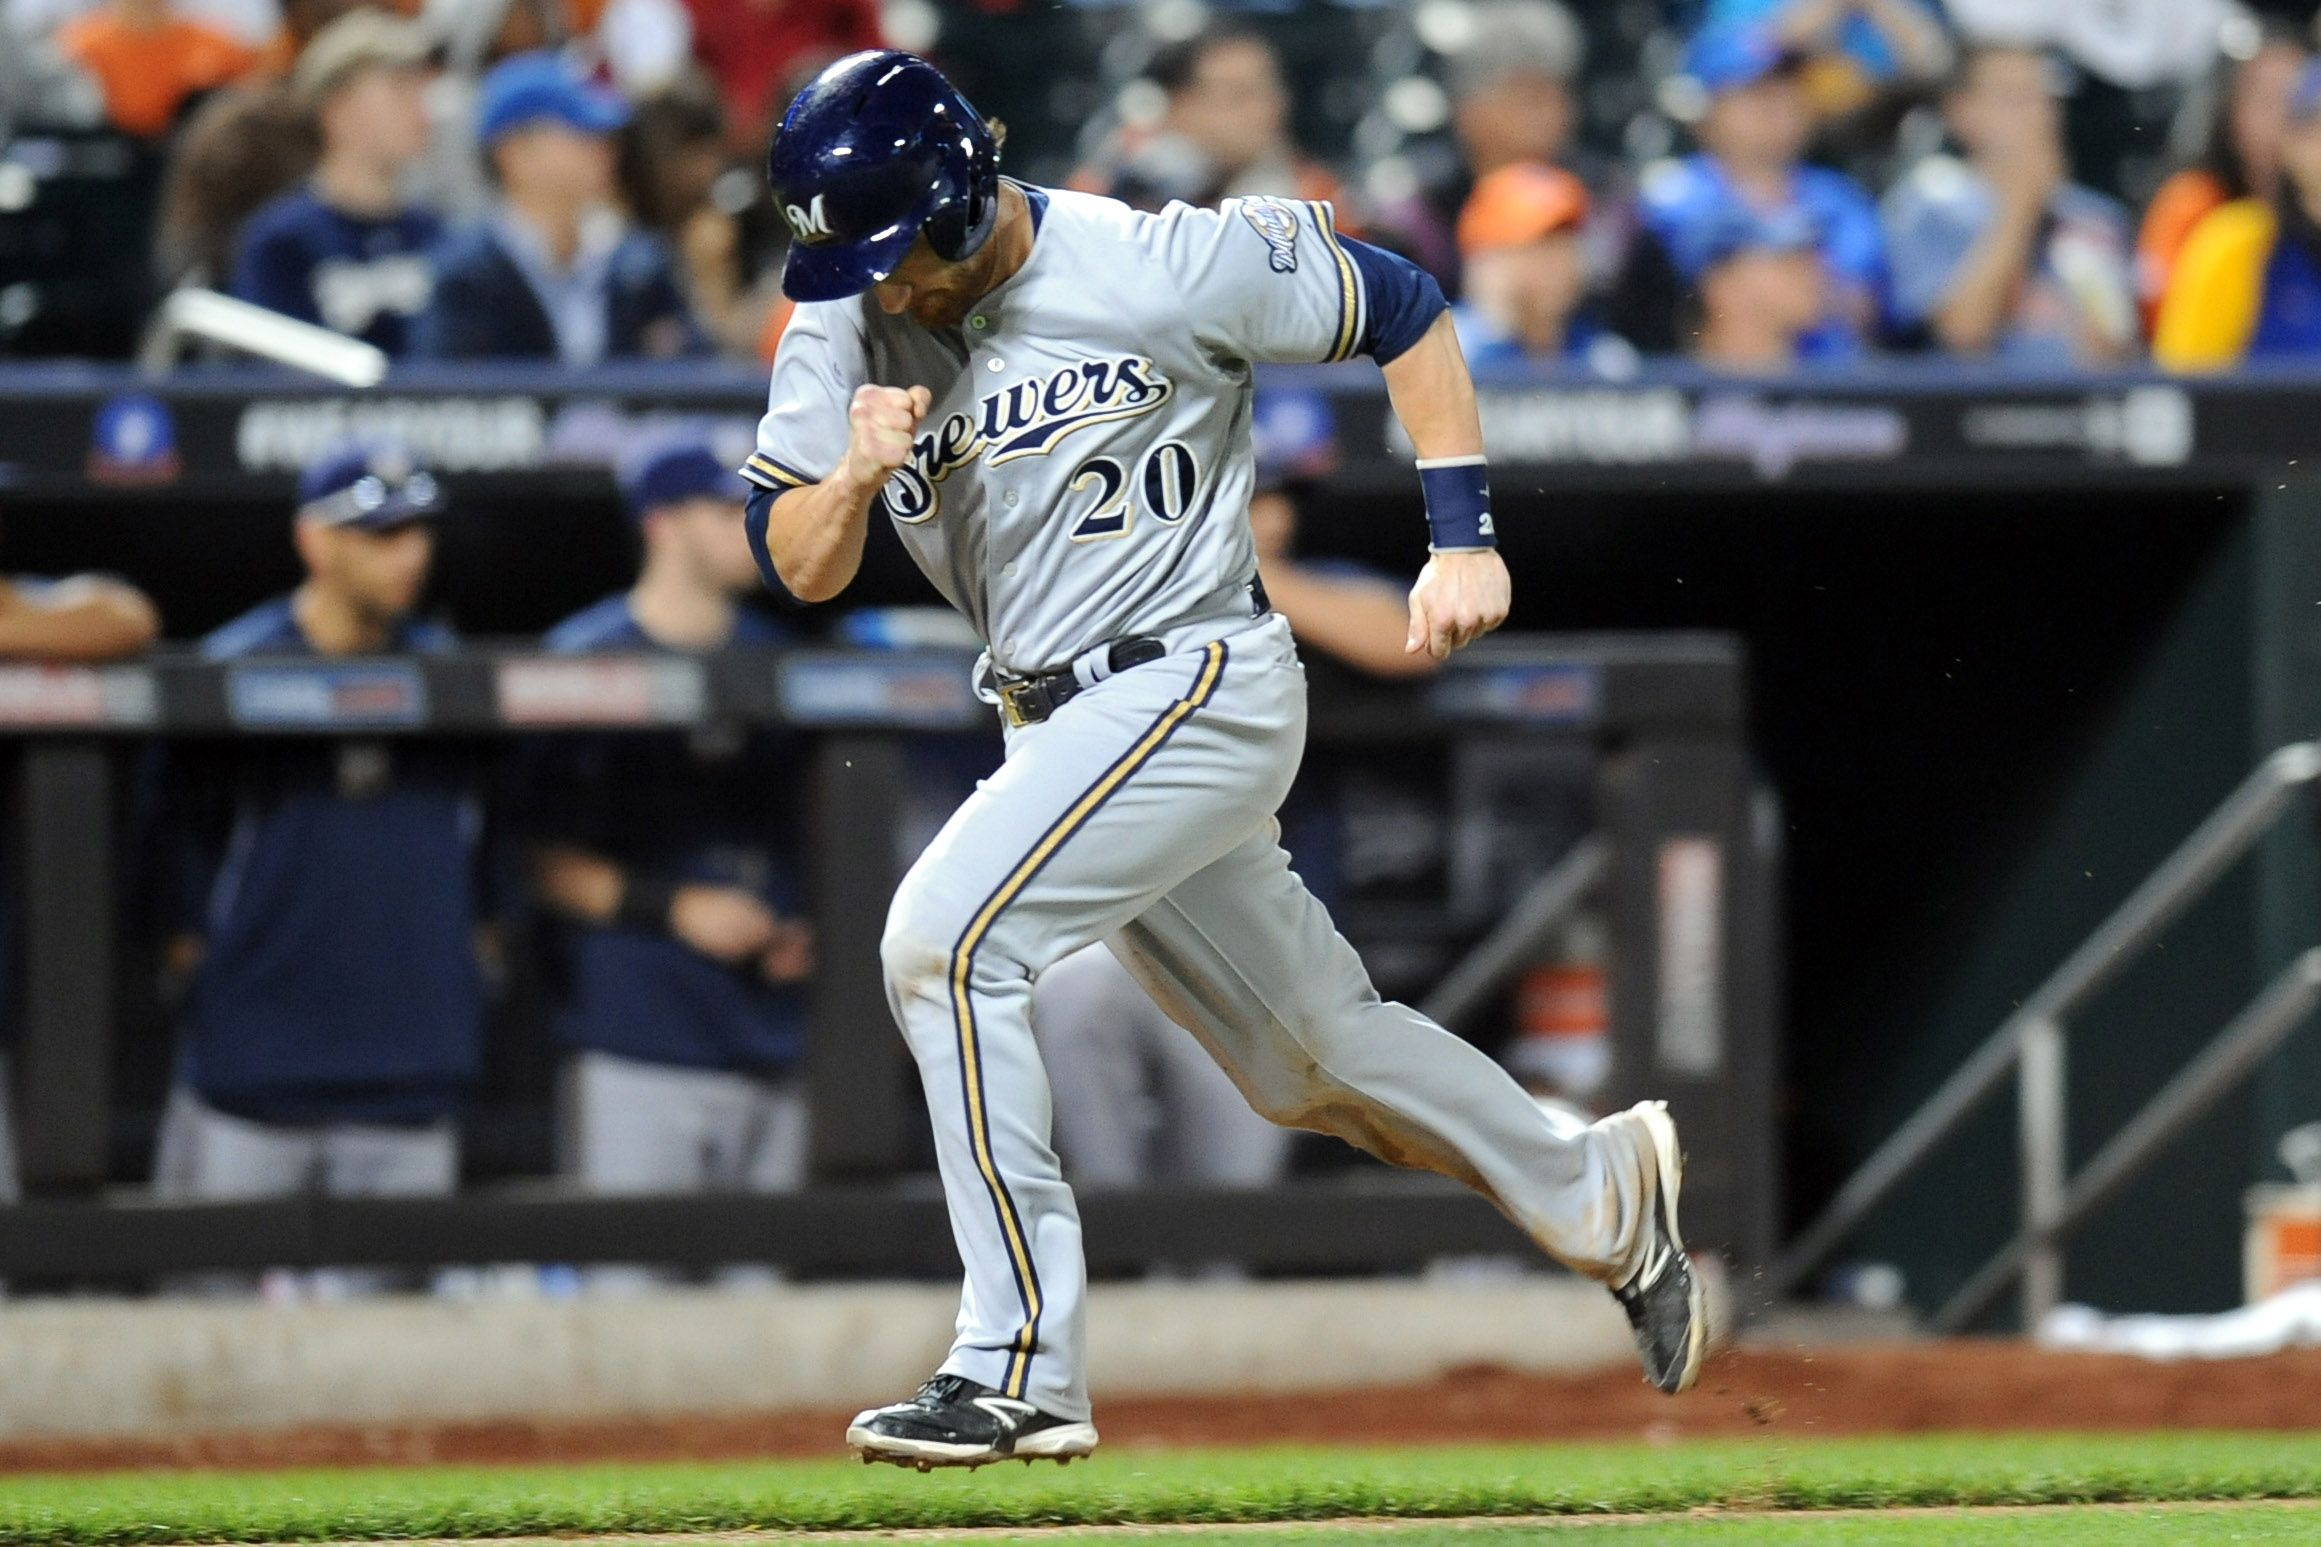 Crowdcam Hot Shot Milwaukee Brewers Catcher Jonathan Lucroy Heads Home After Tagging Up At Third Base After Being D New York Mets Third Base Milwaukee Brewers